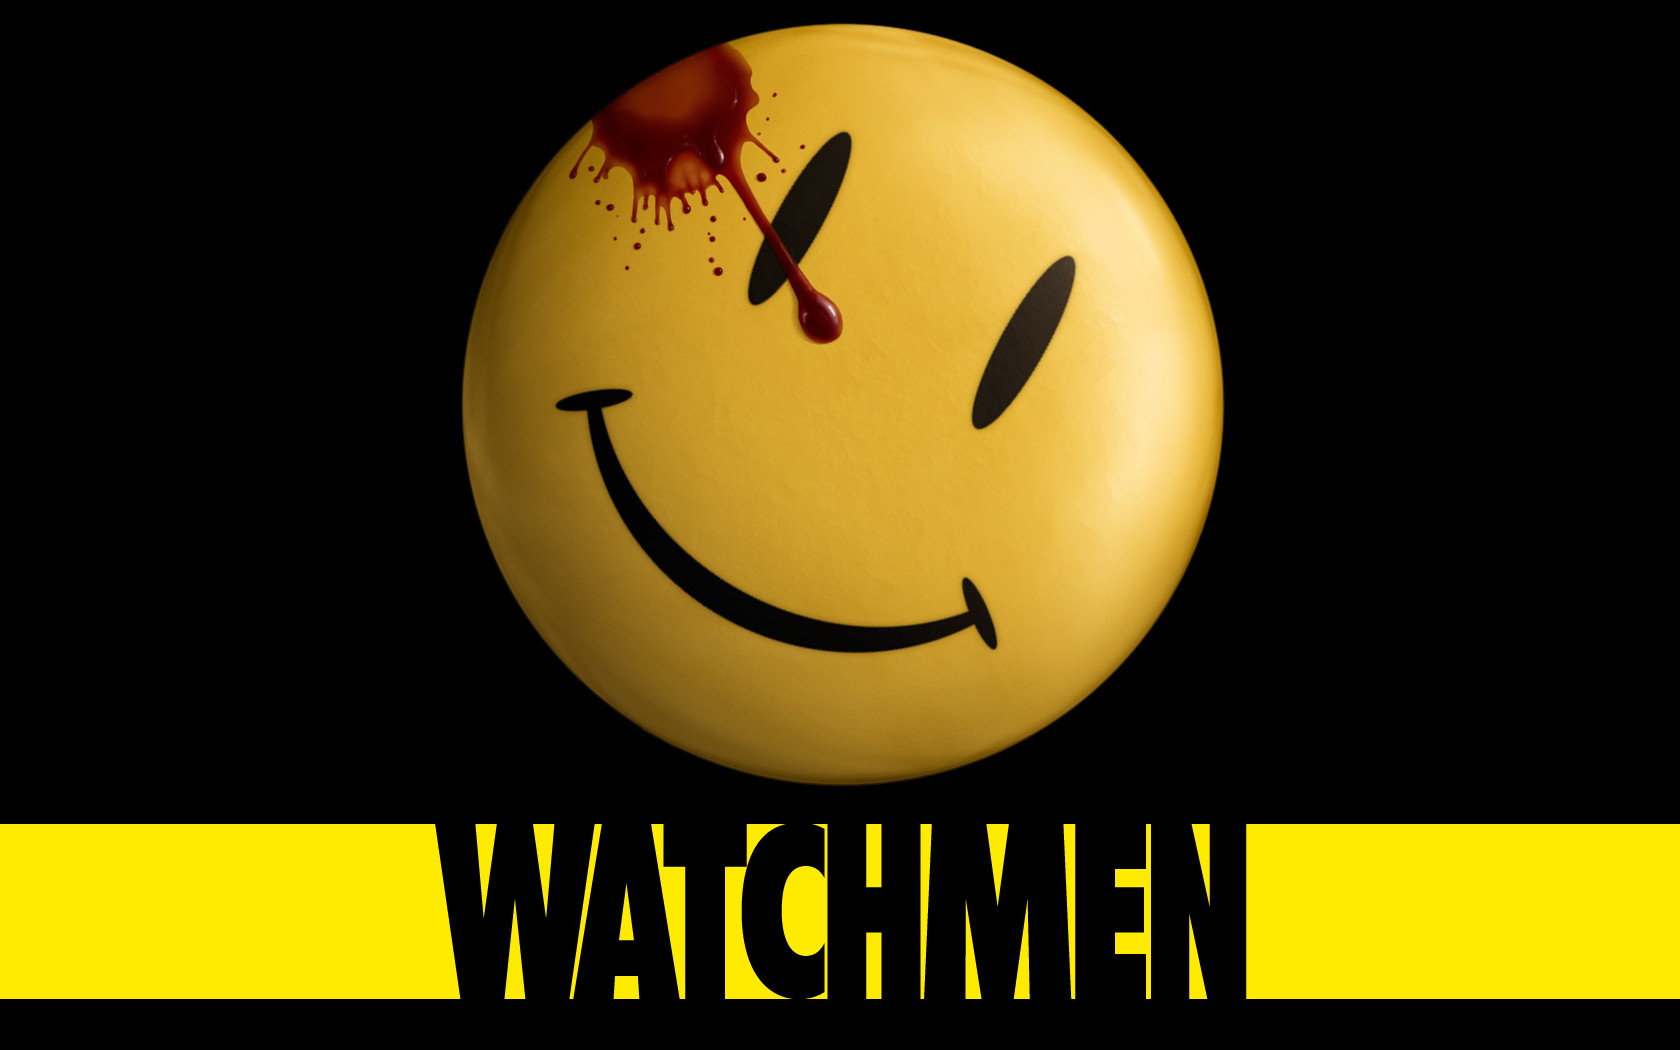 Watchmen Smiley Wallpaper by ash369